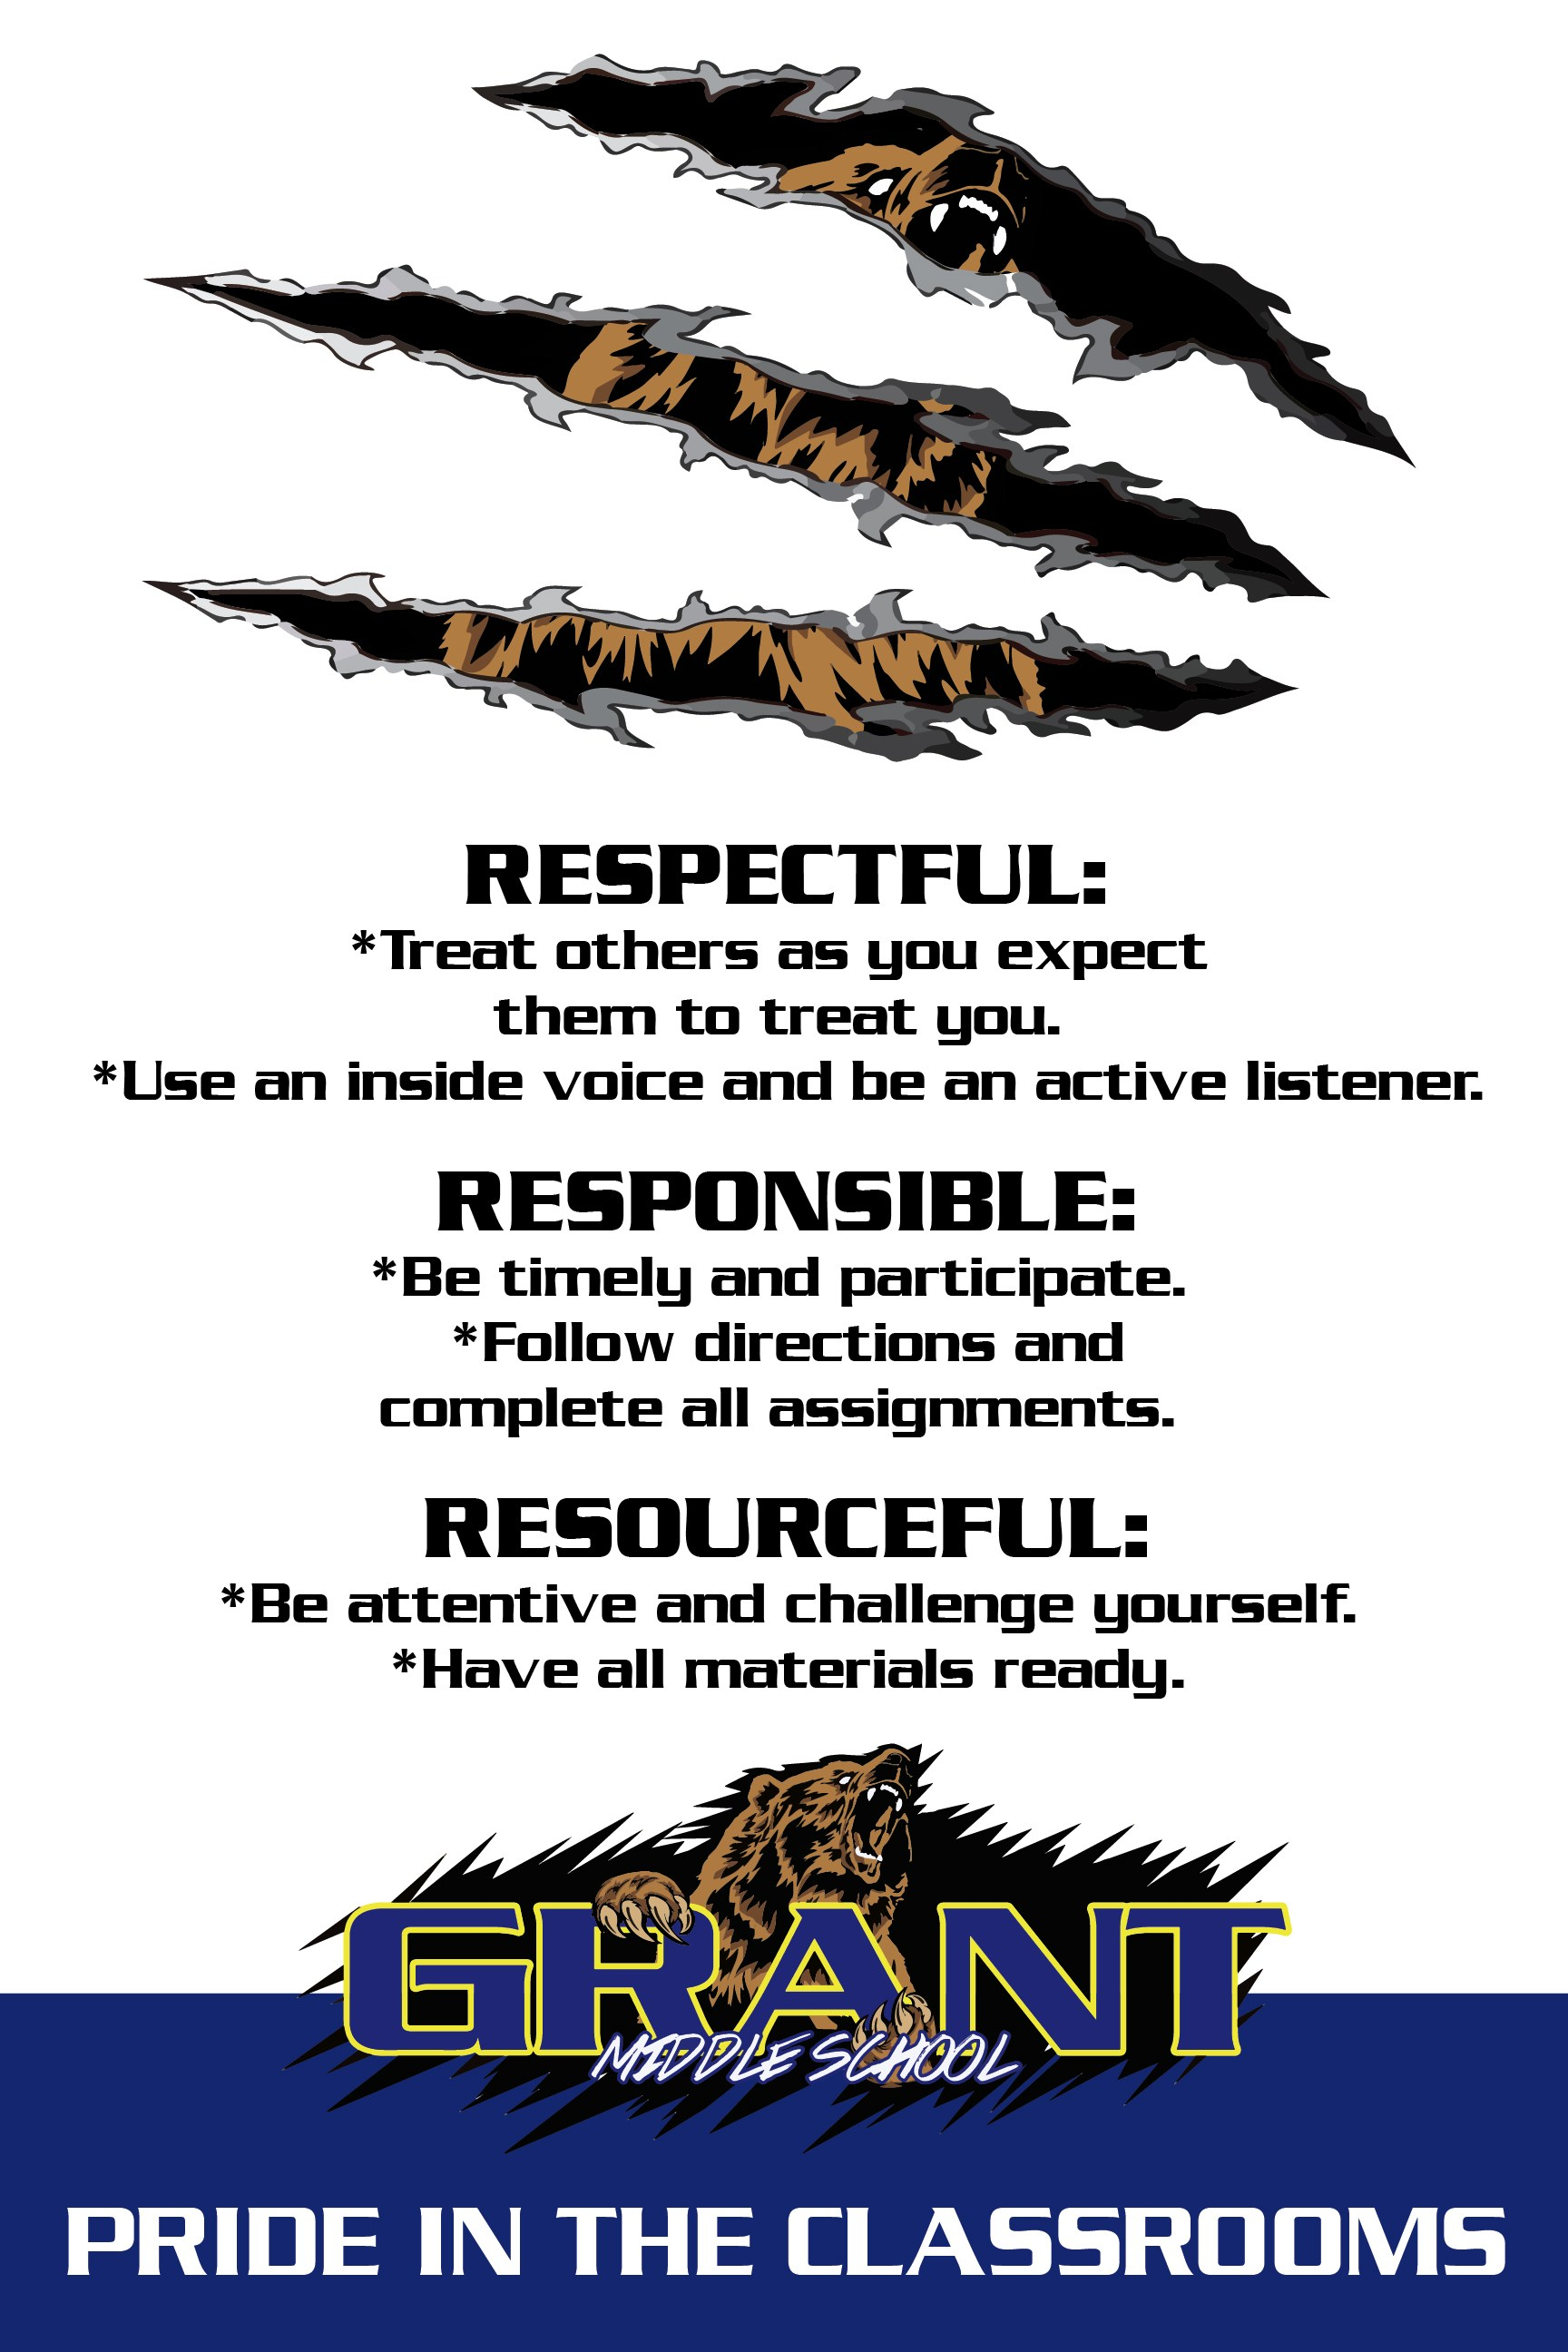 Image of Grizzly bear through claw marks respectful- treat others as you expect them to treat you. Use an inside voice and be an active listener. Responsible- Be timely and participate. Follow directions and complete all assignments. Resourceful- Be attentive and challenge yourself. Have all materials ready. Image of Grant Middle School